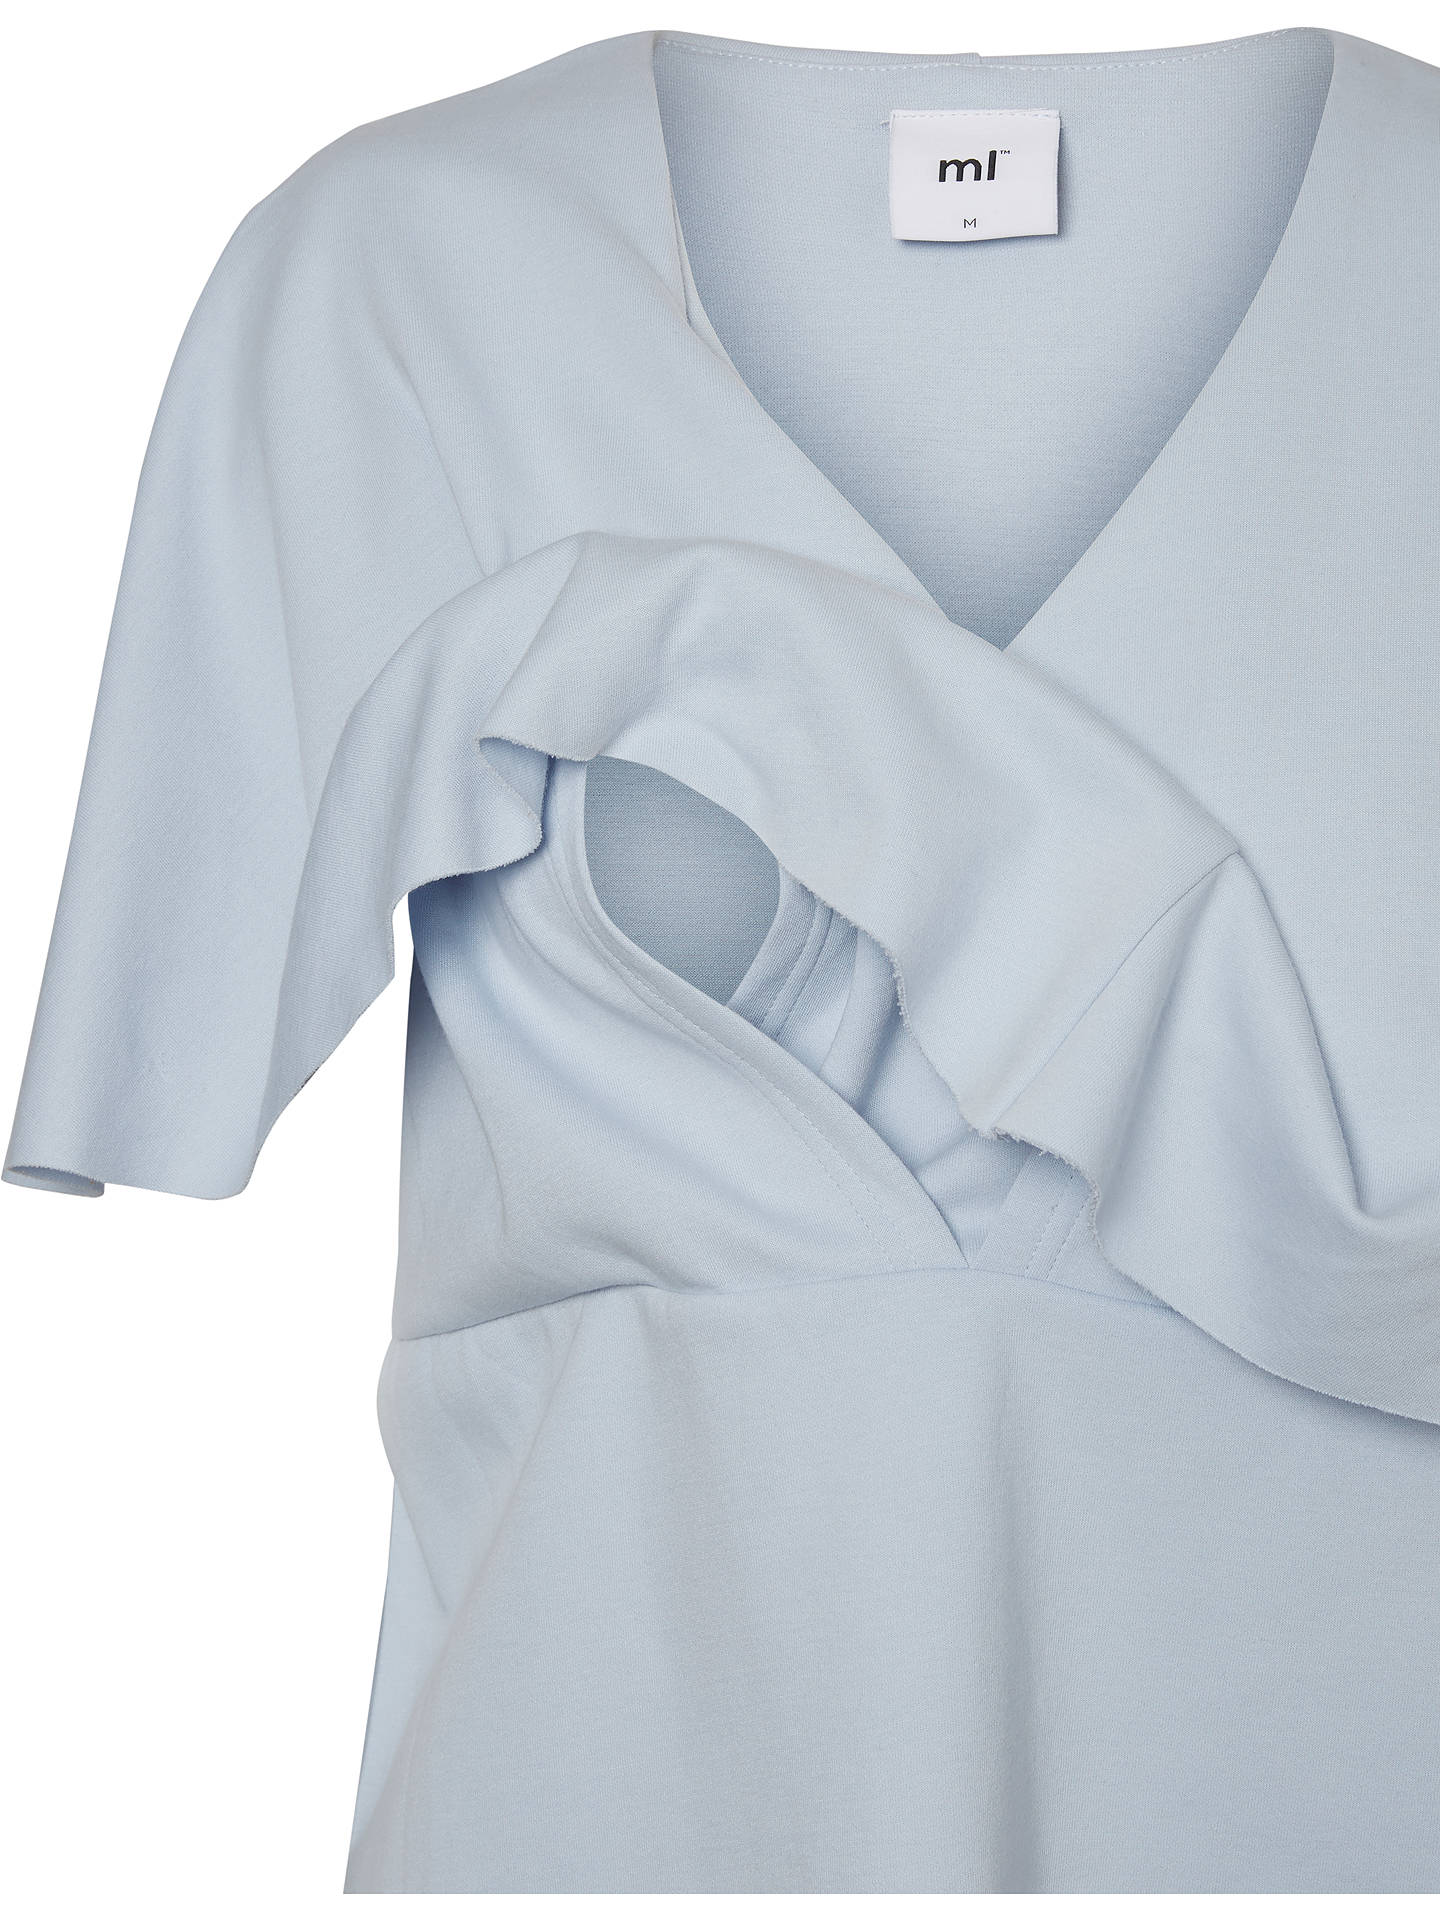 BuyMamalicious Elisa Maternity Nursing Jersey Blouse, Blue, XL Online at johnlewis.com